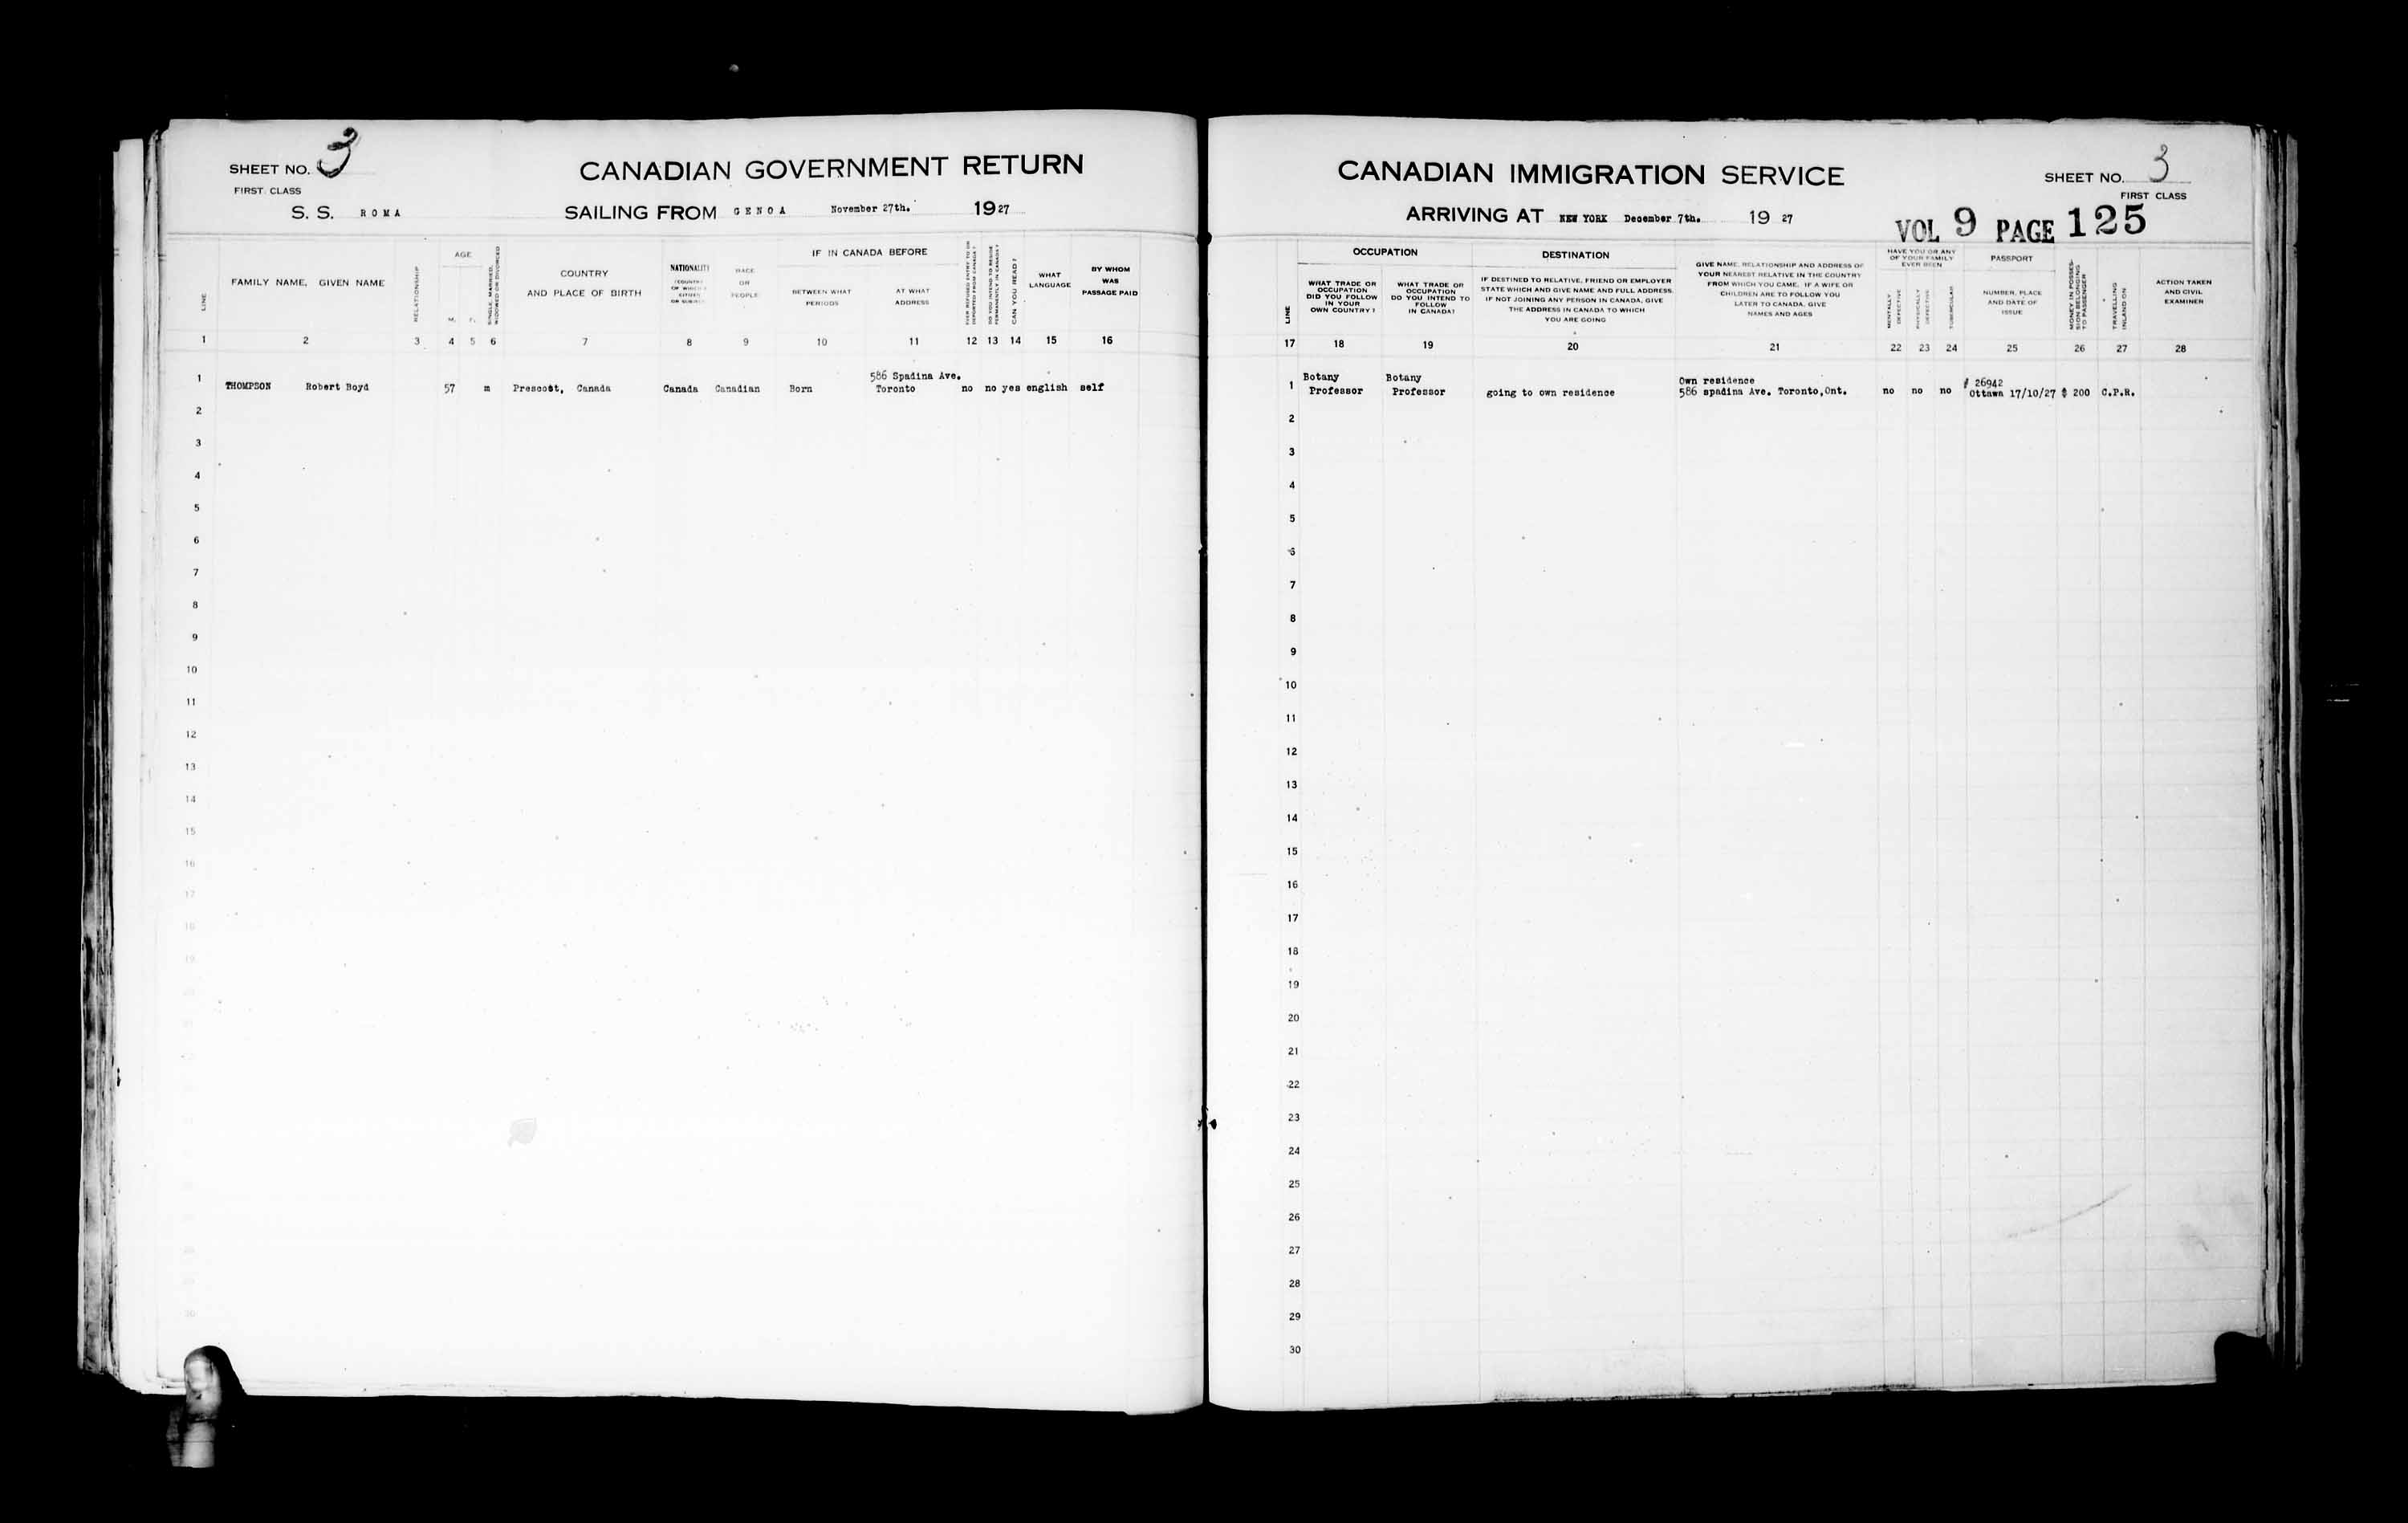 Title: Passenger Lists: New York (1925-1935) - Mikan Number: 161343 - Microform: t-14932